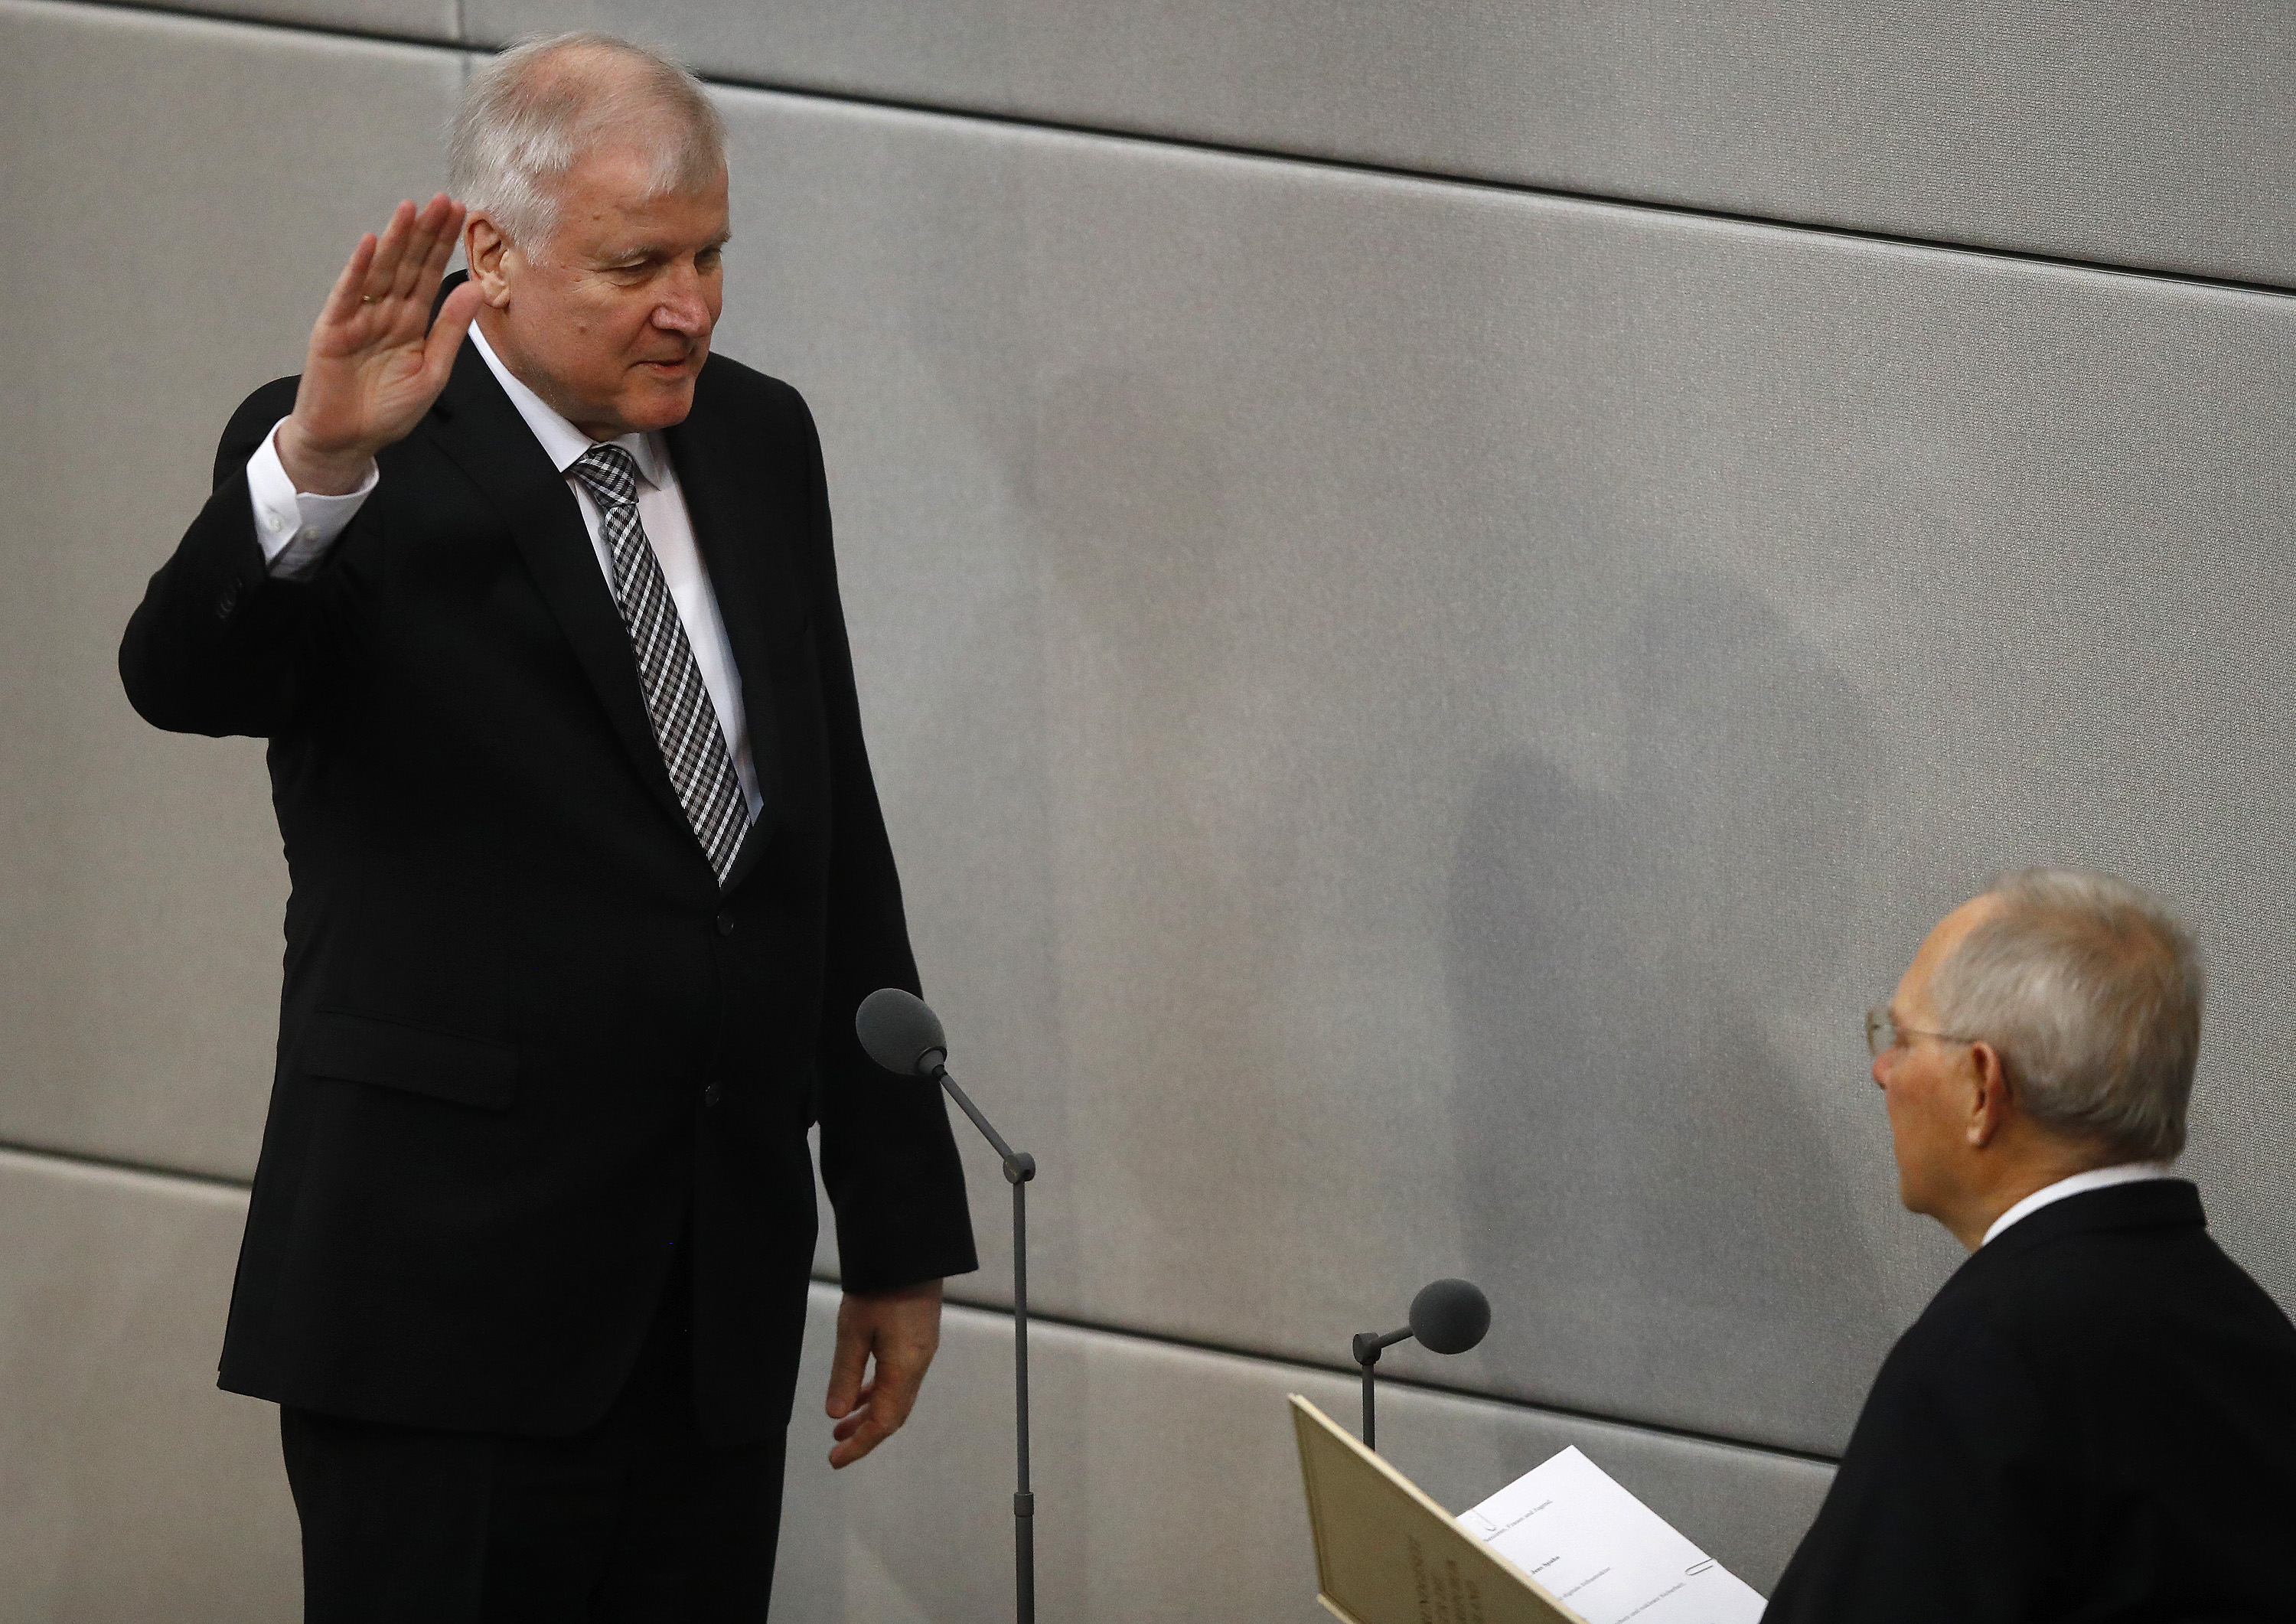 German Interior Minister Horst Seehofer is sworn-in by Parliament President Wolfgang Schaeuble in Germany's lower house of parliament Bundestag in Berlin, Germany, March 14, 2018. REUTERS/Kai Pfaffenbach